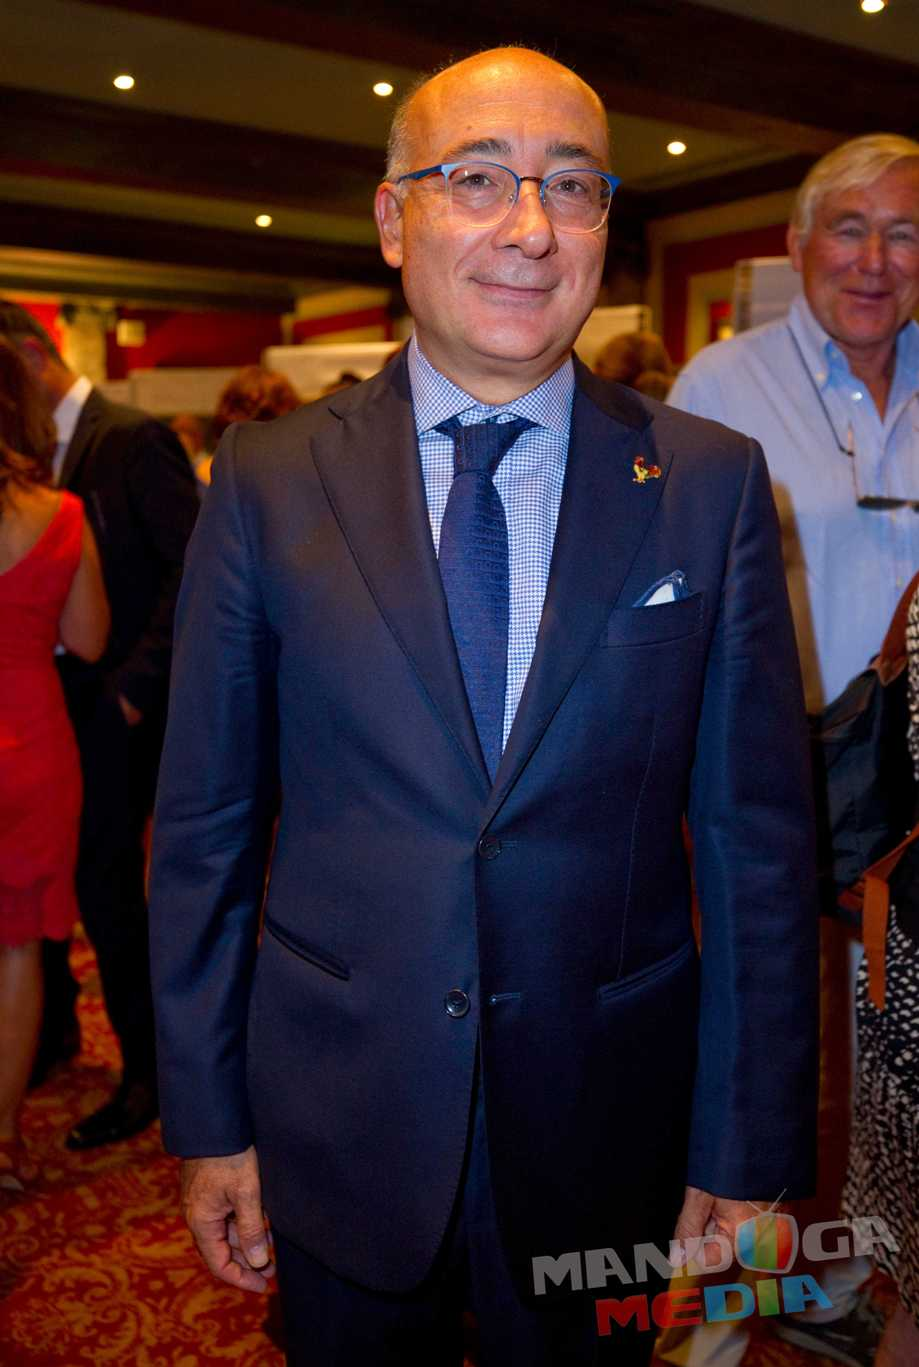 Monaco, Monte Carlo - September 21, 2018: 8° BIENNALE D'ARTE INTERNAZIONALE A MONTECARLO with Ambassador of Monaco to Italy, H.E. Mr. Cristiano Gallo. Christiano, International Art Exhibition, Botschafter,